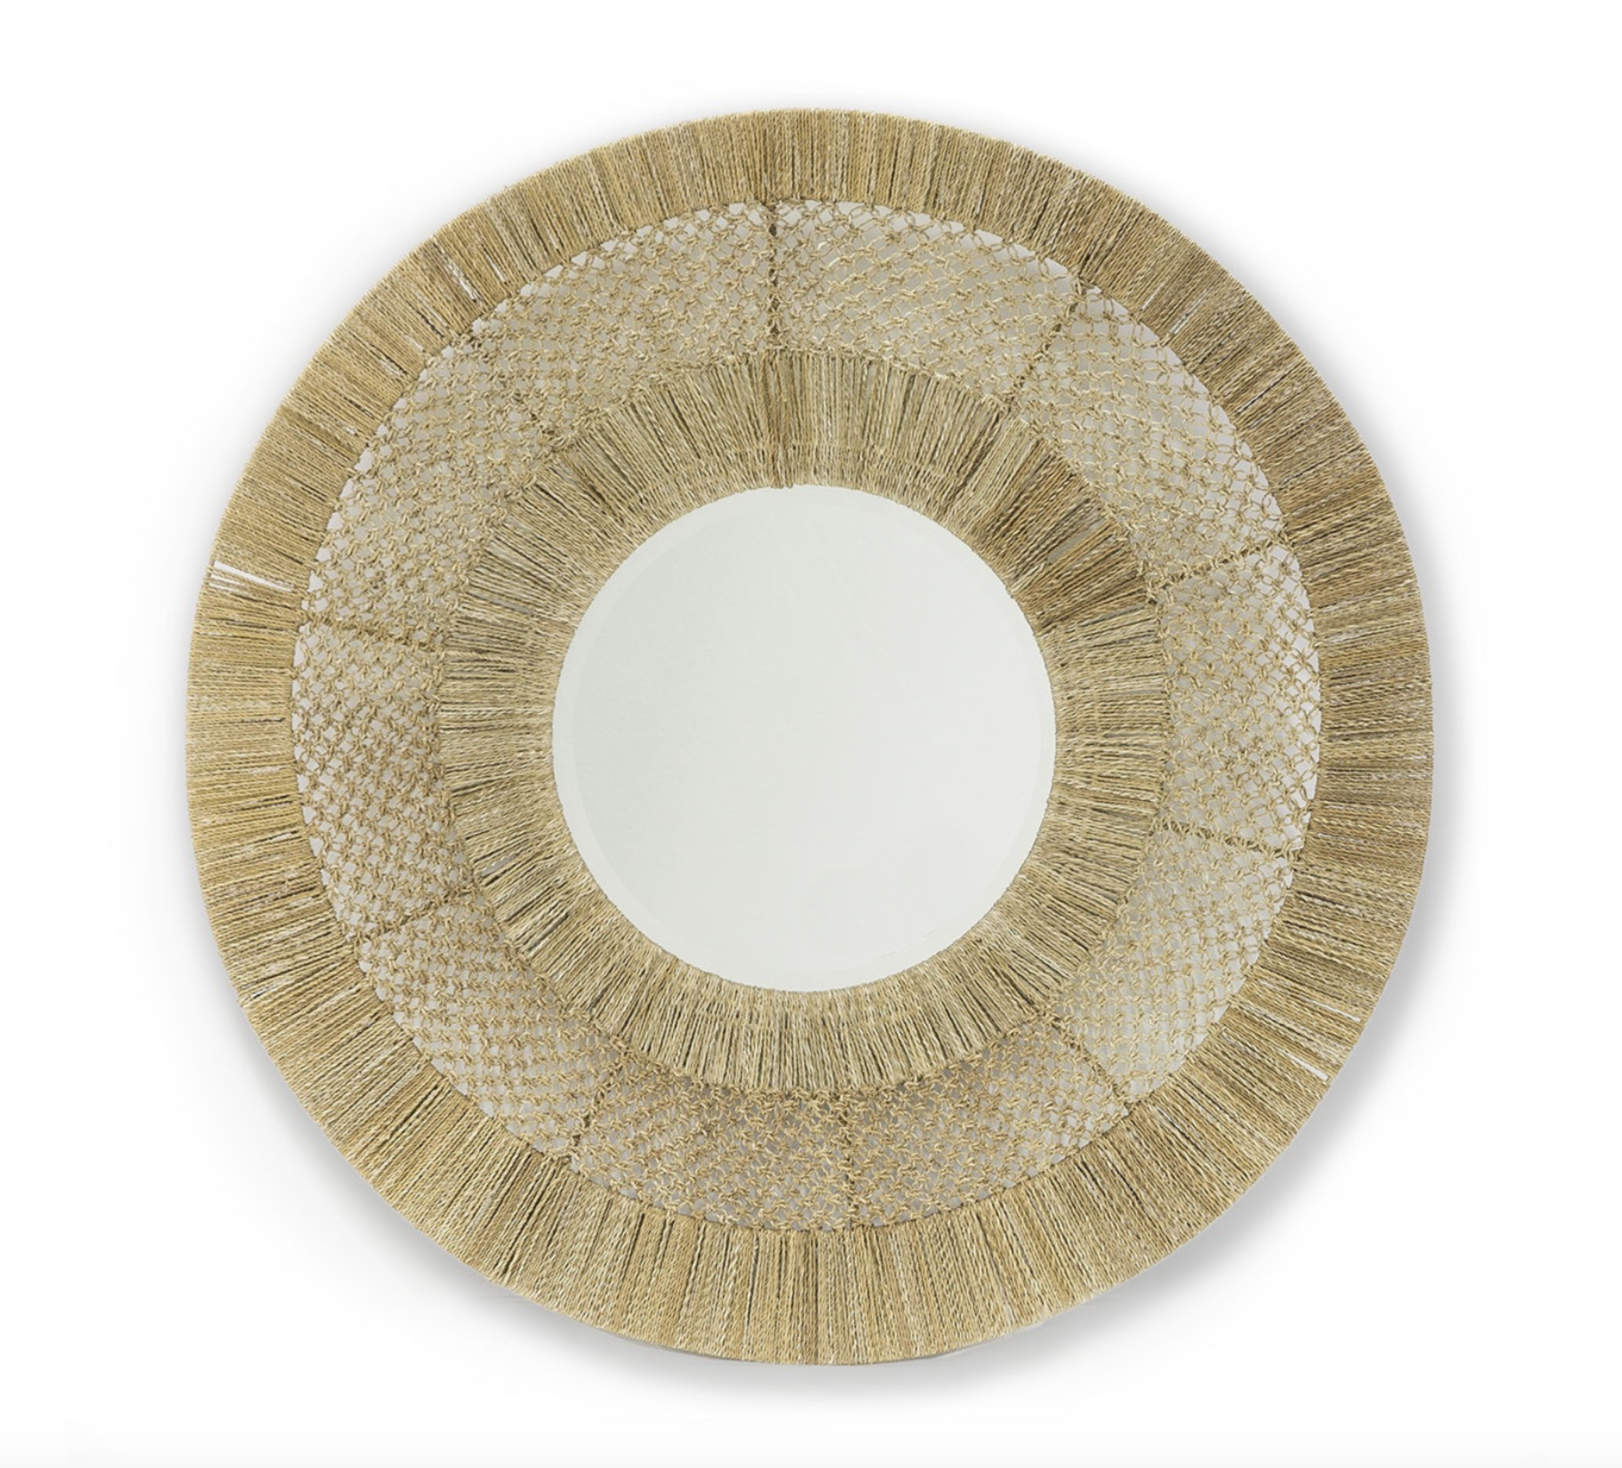 Woven Rope Mirror